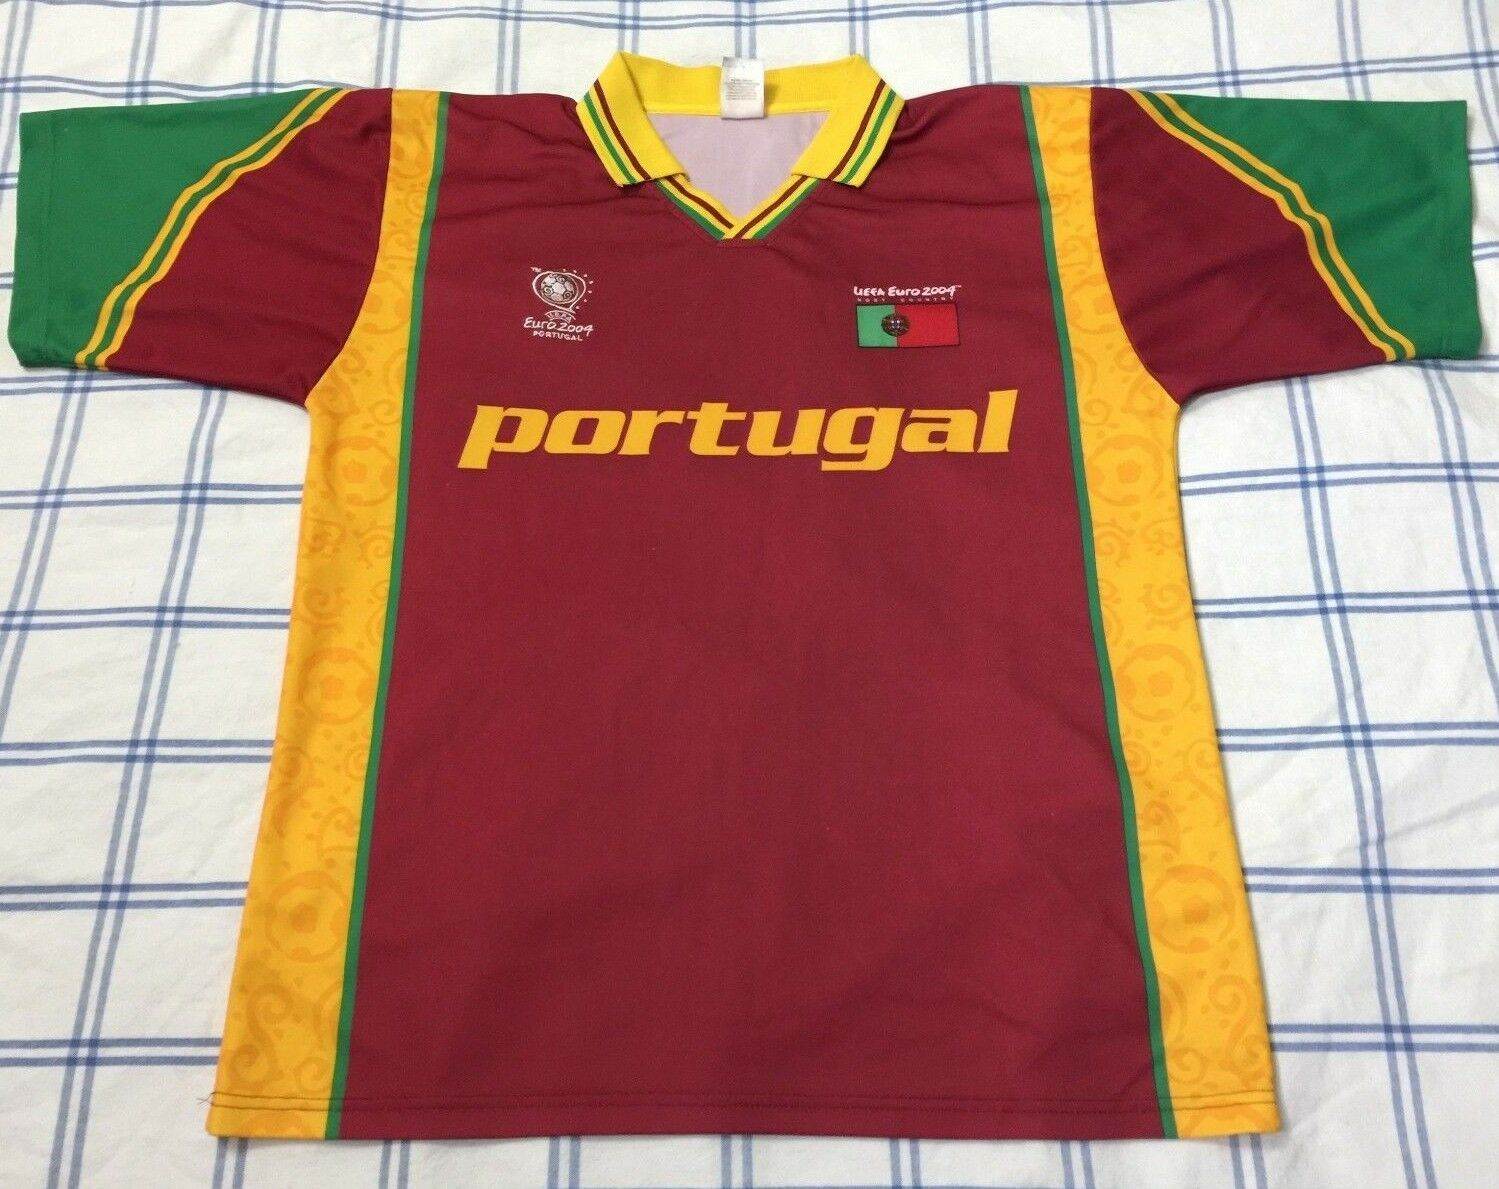 VTG Portugal Jersey Shirt Sz Large Futbol Soccer Football RARE 2004 EURO HOST